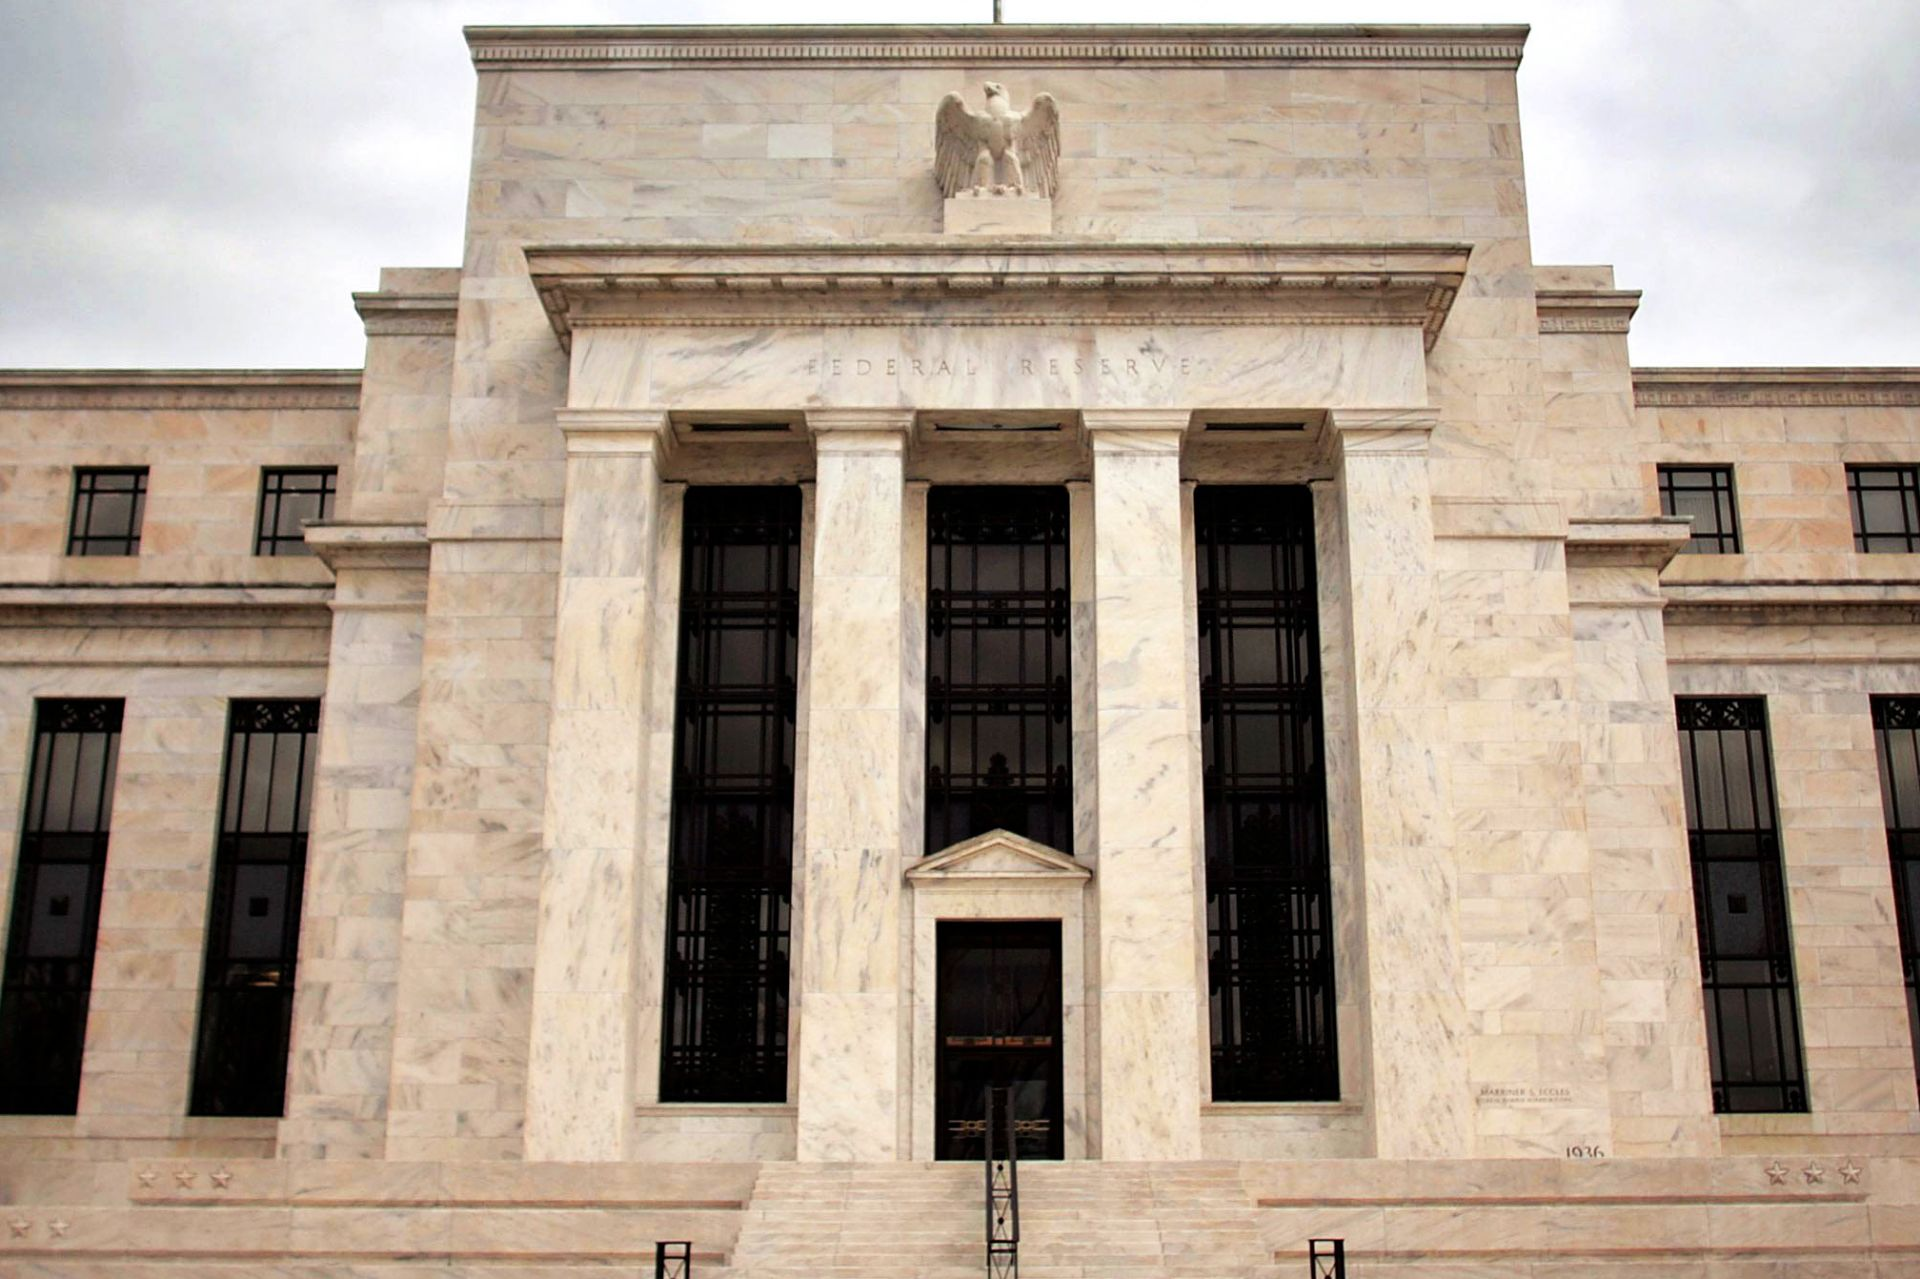 Donald Trump's opportunity to re-make the Federal Reserve